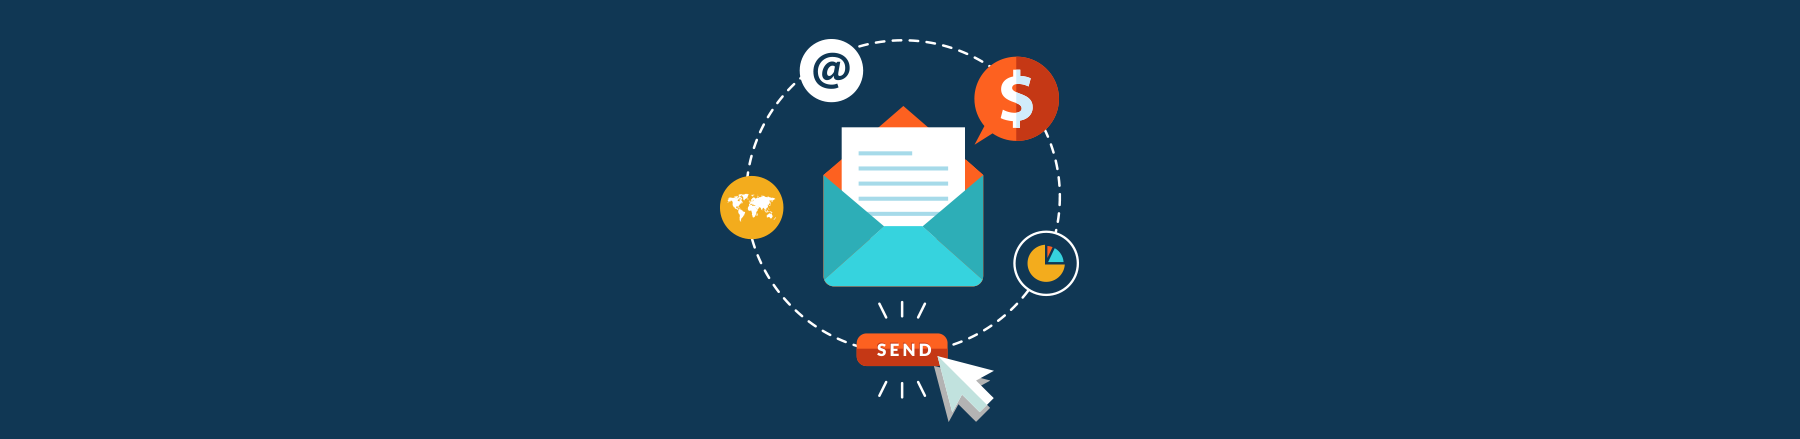 E-Mail-Marketing Agentur